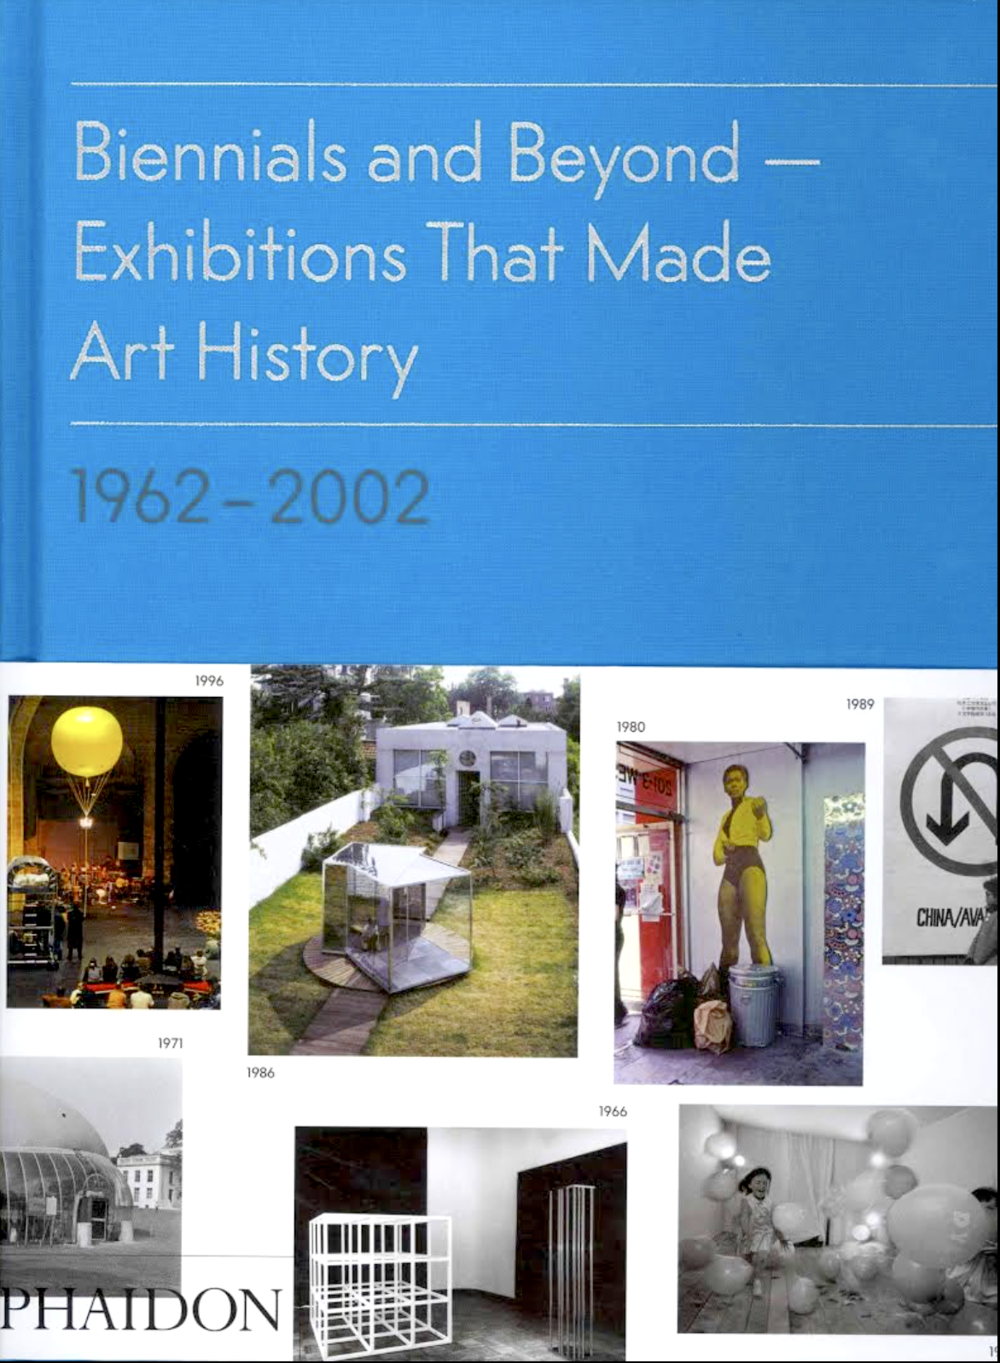 Biennials and Beyond - Exhibitions That Made Art History 1962-2002 Phaidon Press